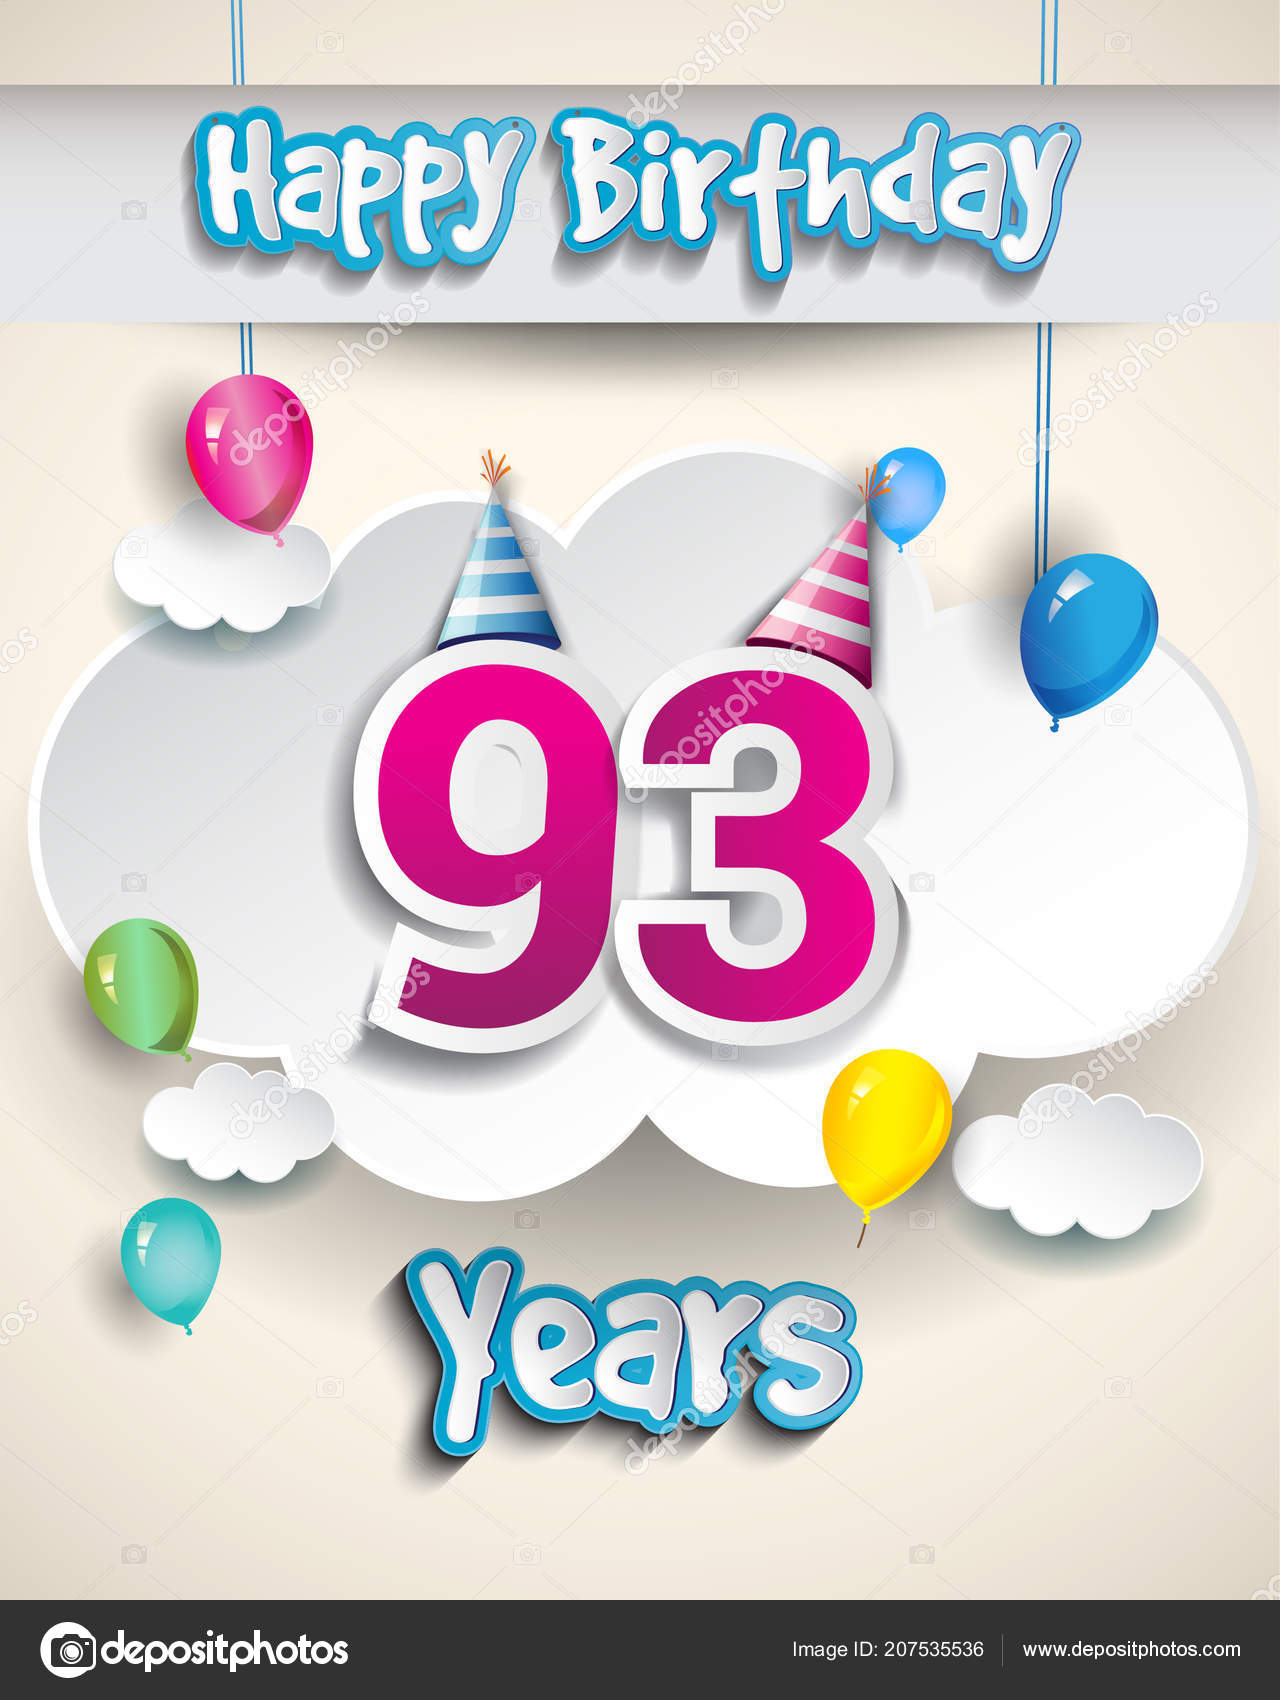 Years Birthday Design Greeting Cards Poster Gift Boxes Balloons